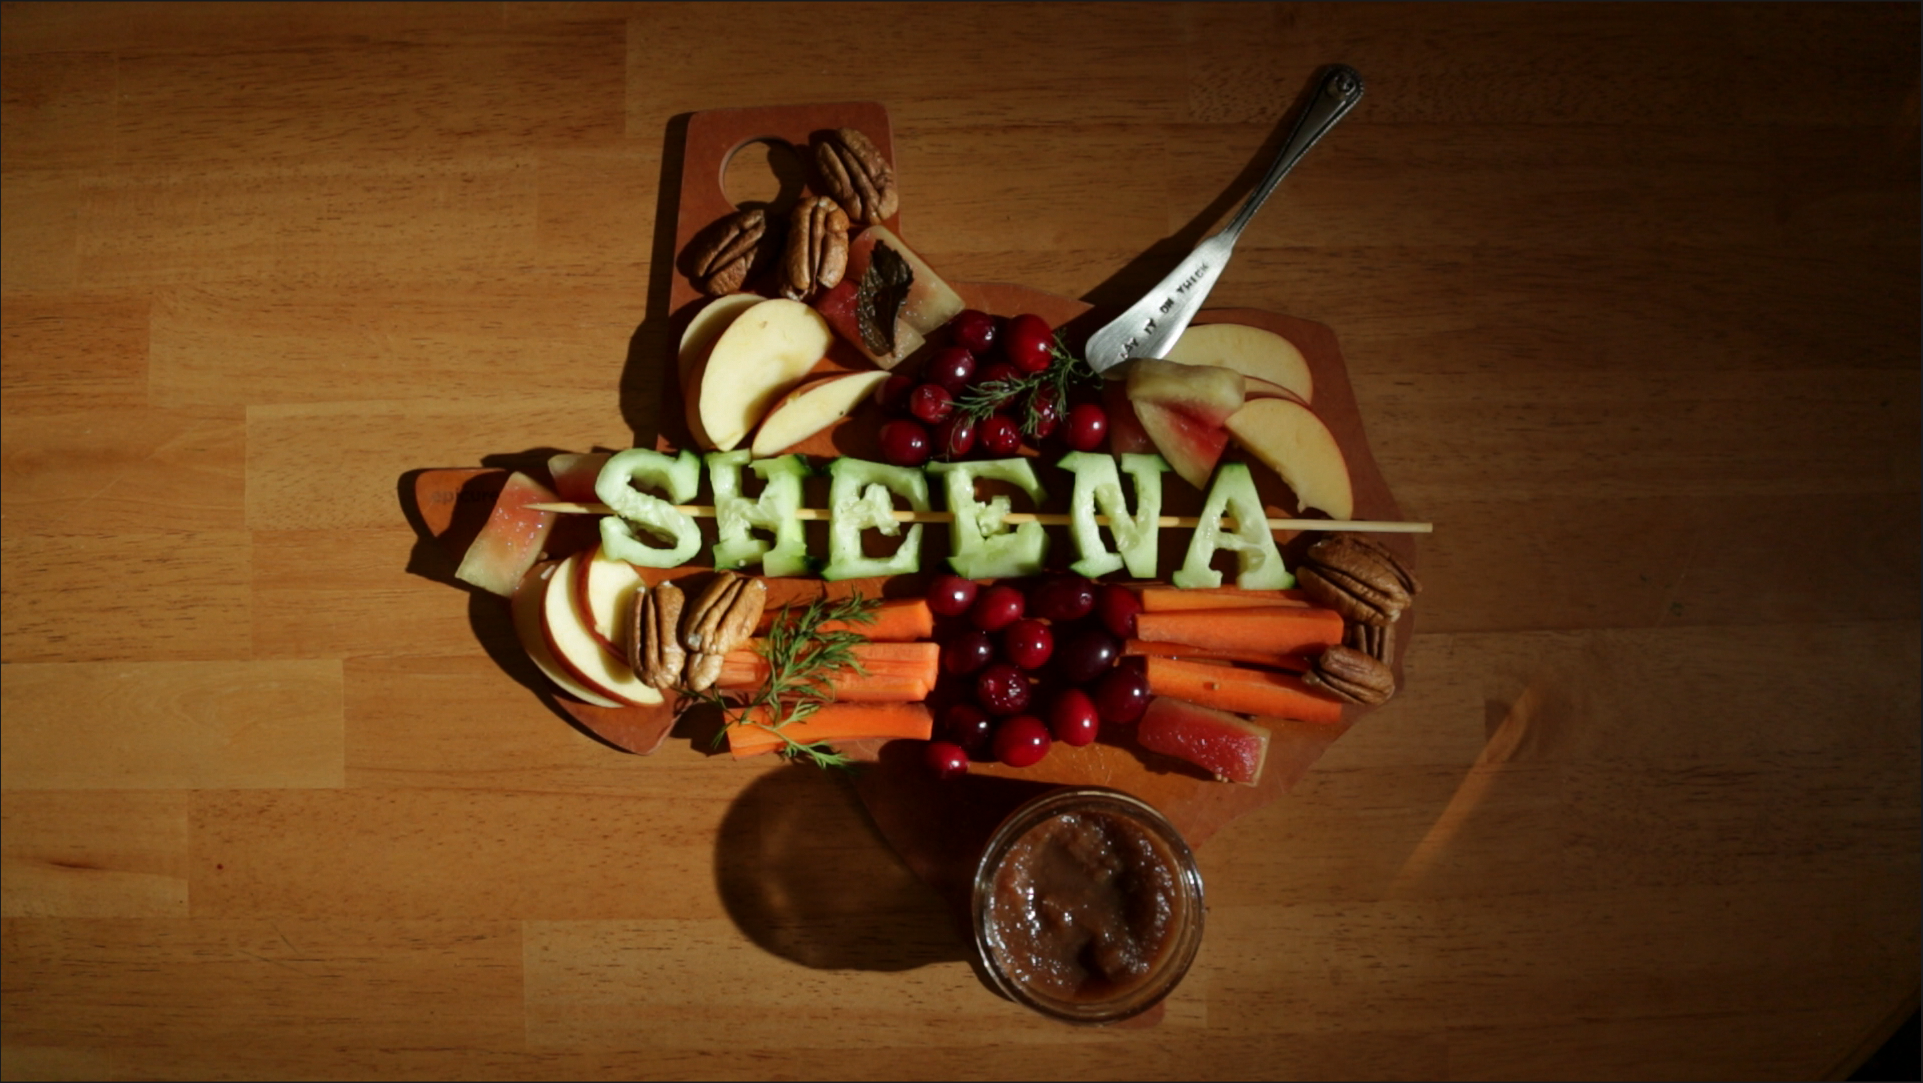 Sheena's pickles